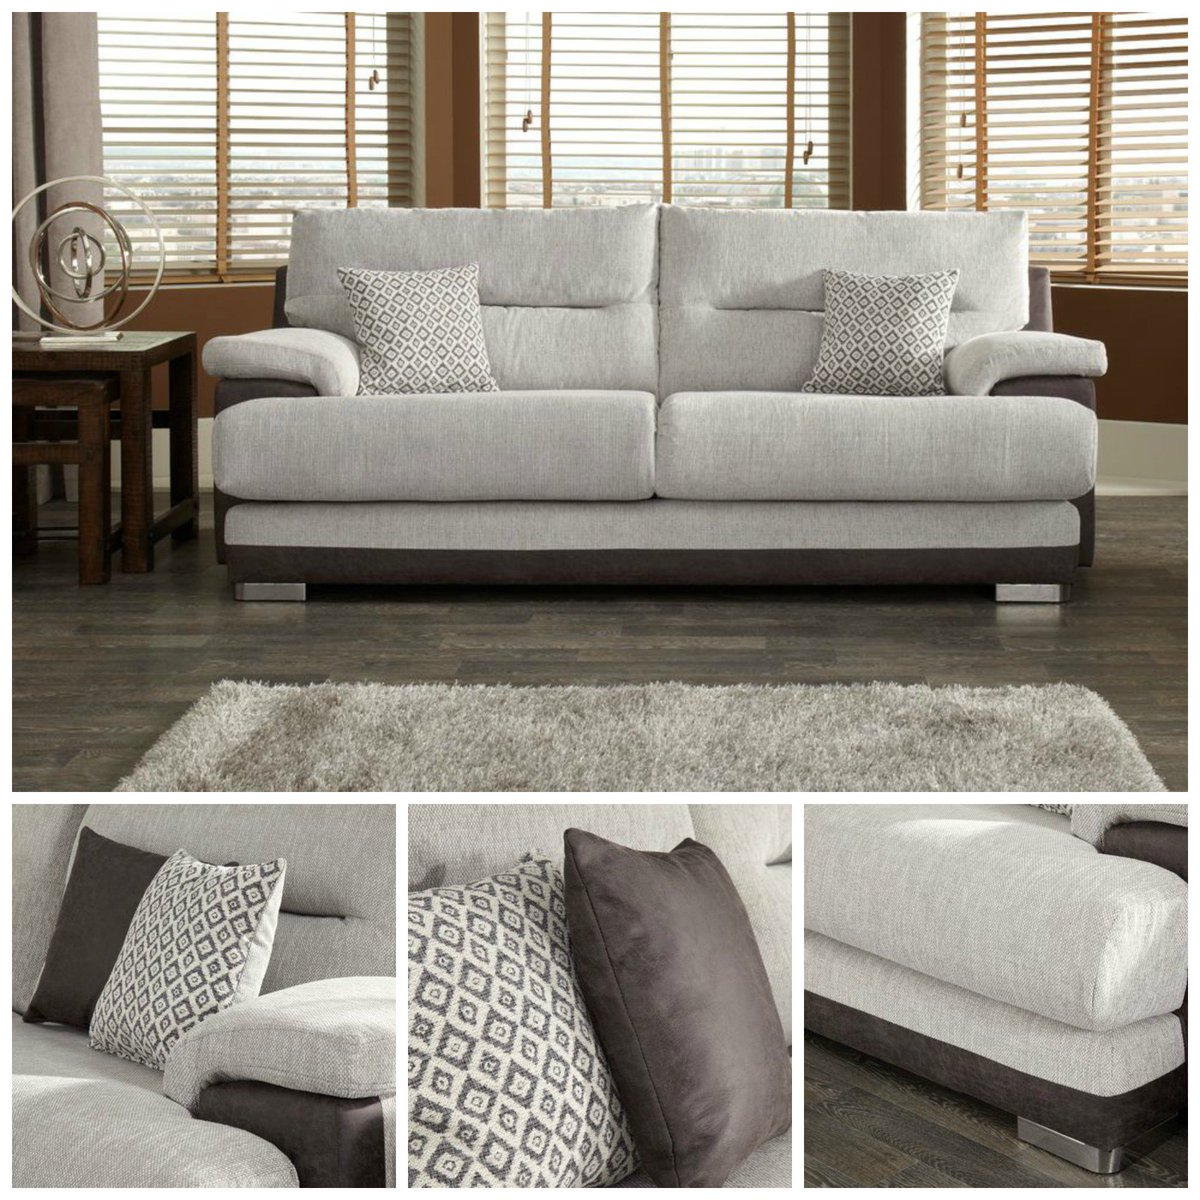 Scs Sofas On Twitter Save 500 This Modern Macie 3 Seater Sofa Now Only 495 Order For Chrismasdelivery Https T Co Hwoiktlqdx